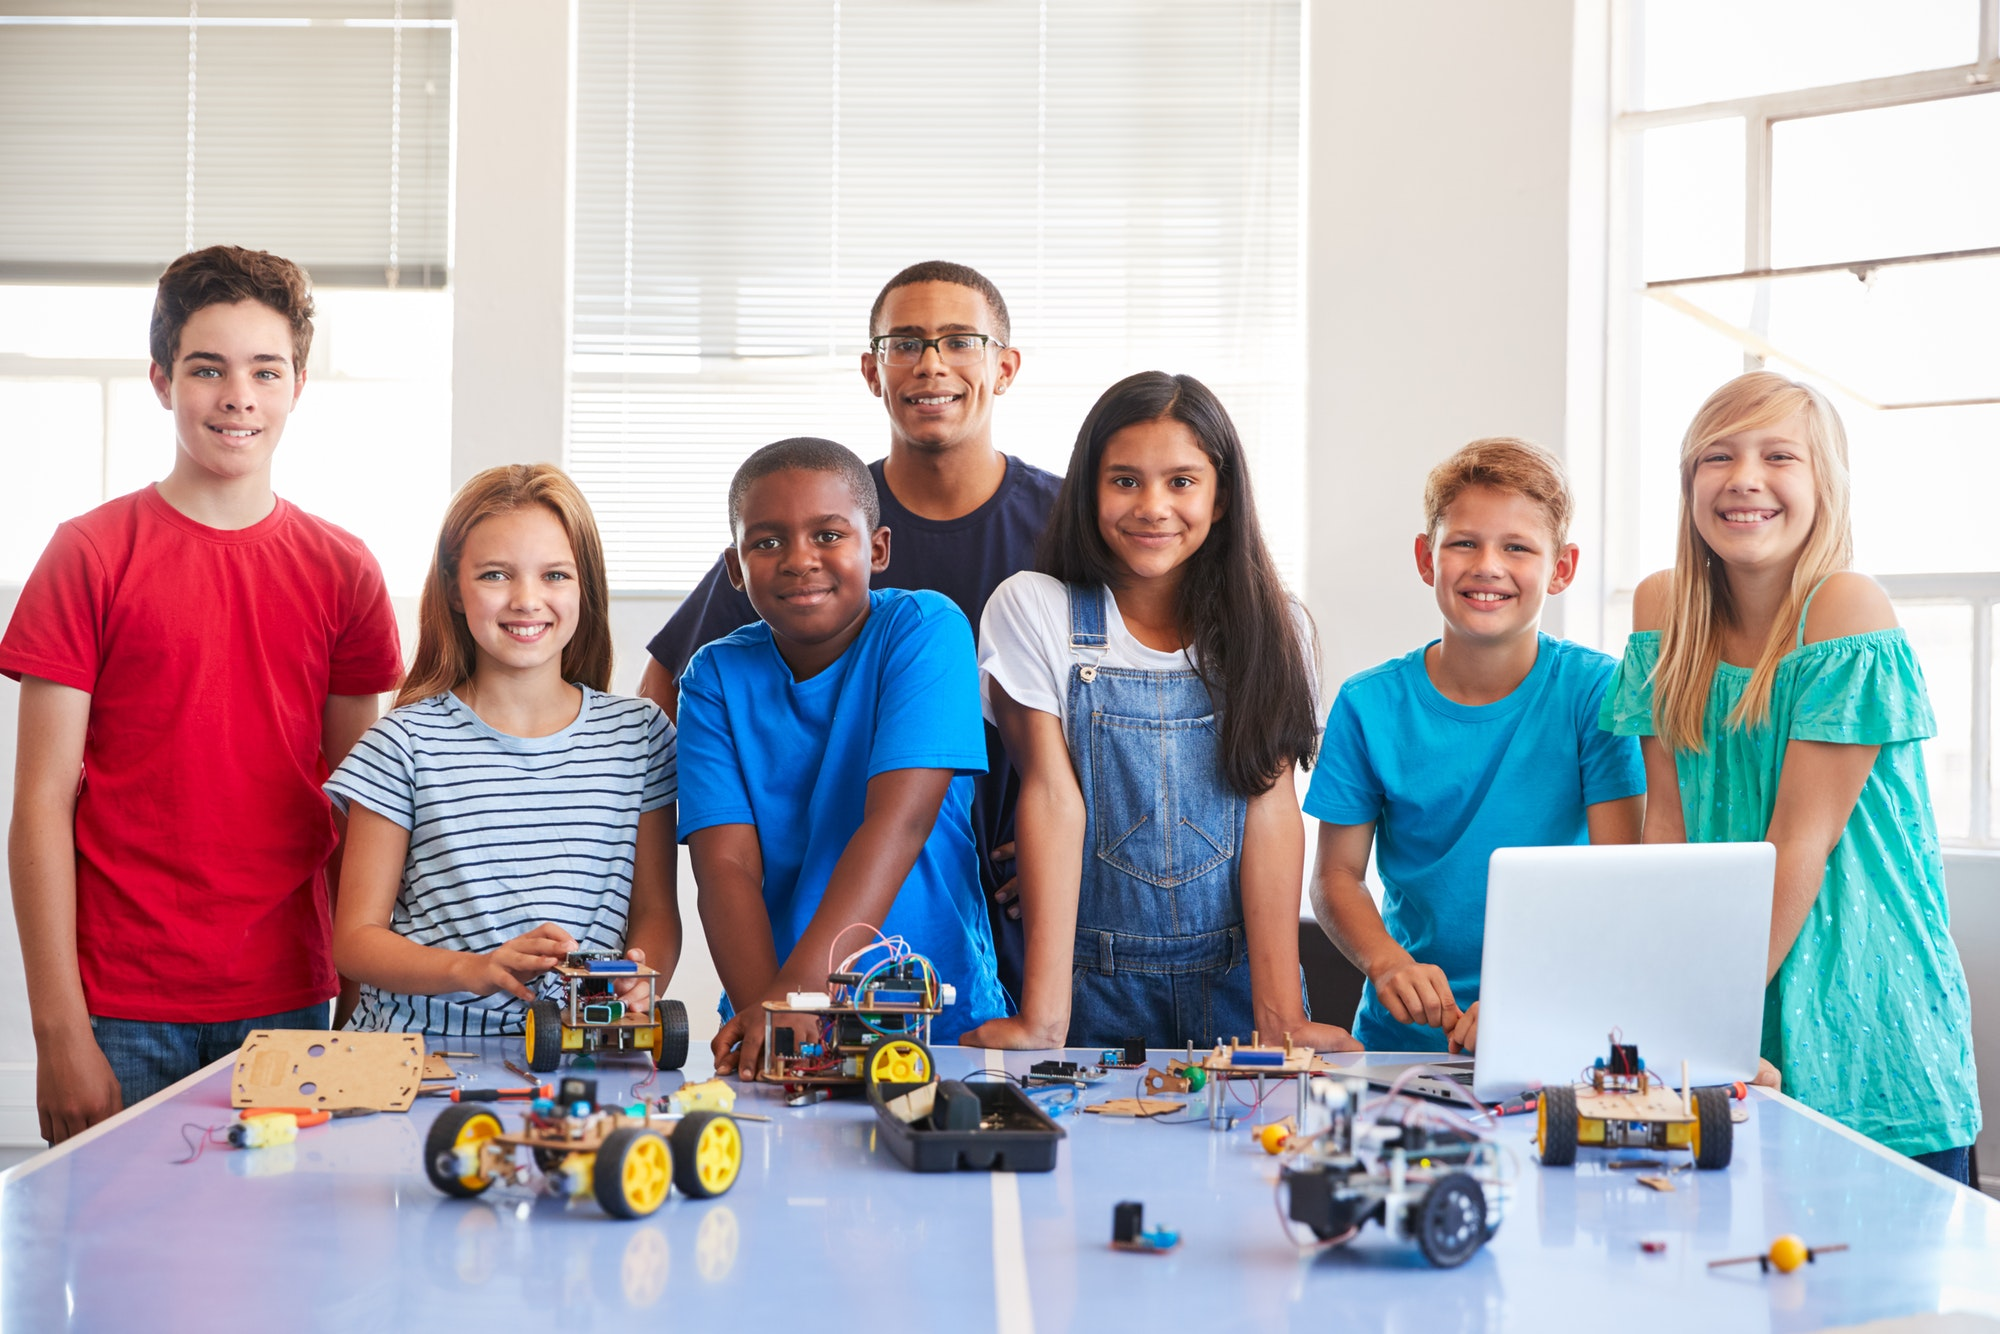 portrait-of-students-with-teacher-building-robot-vehicle-in-after-school-computer-coding-class.jpg